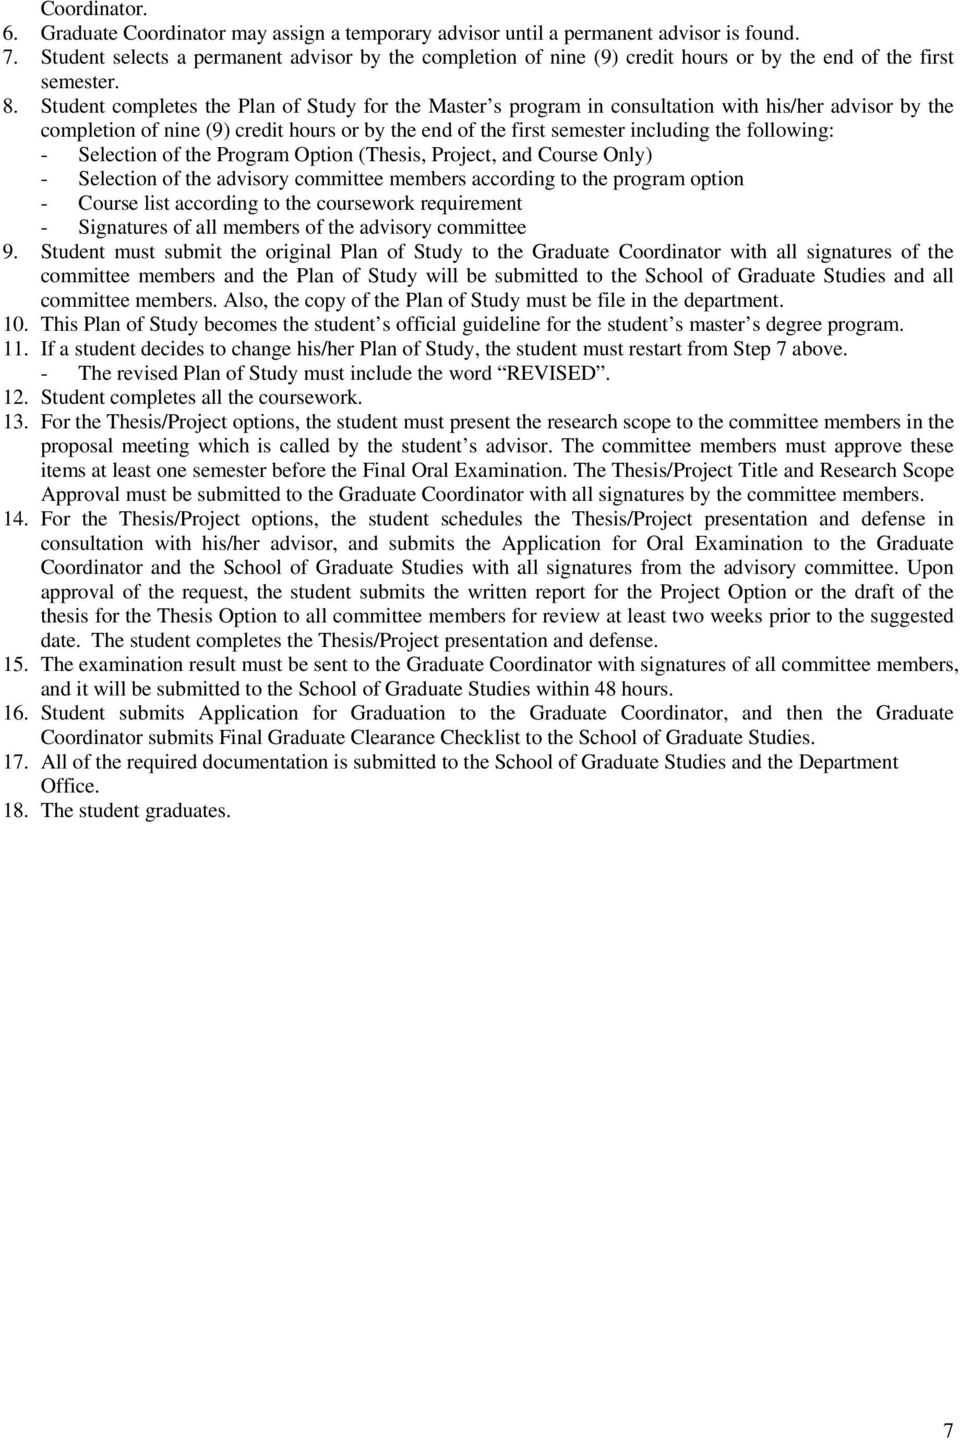 Student completes the Plan of Study for the Master s program in consultation with his/her advisor by the completion of nine (9) credit hours or by the end of the first semester including the